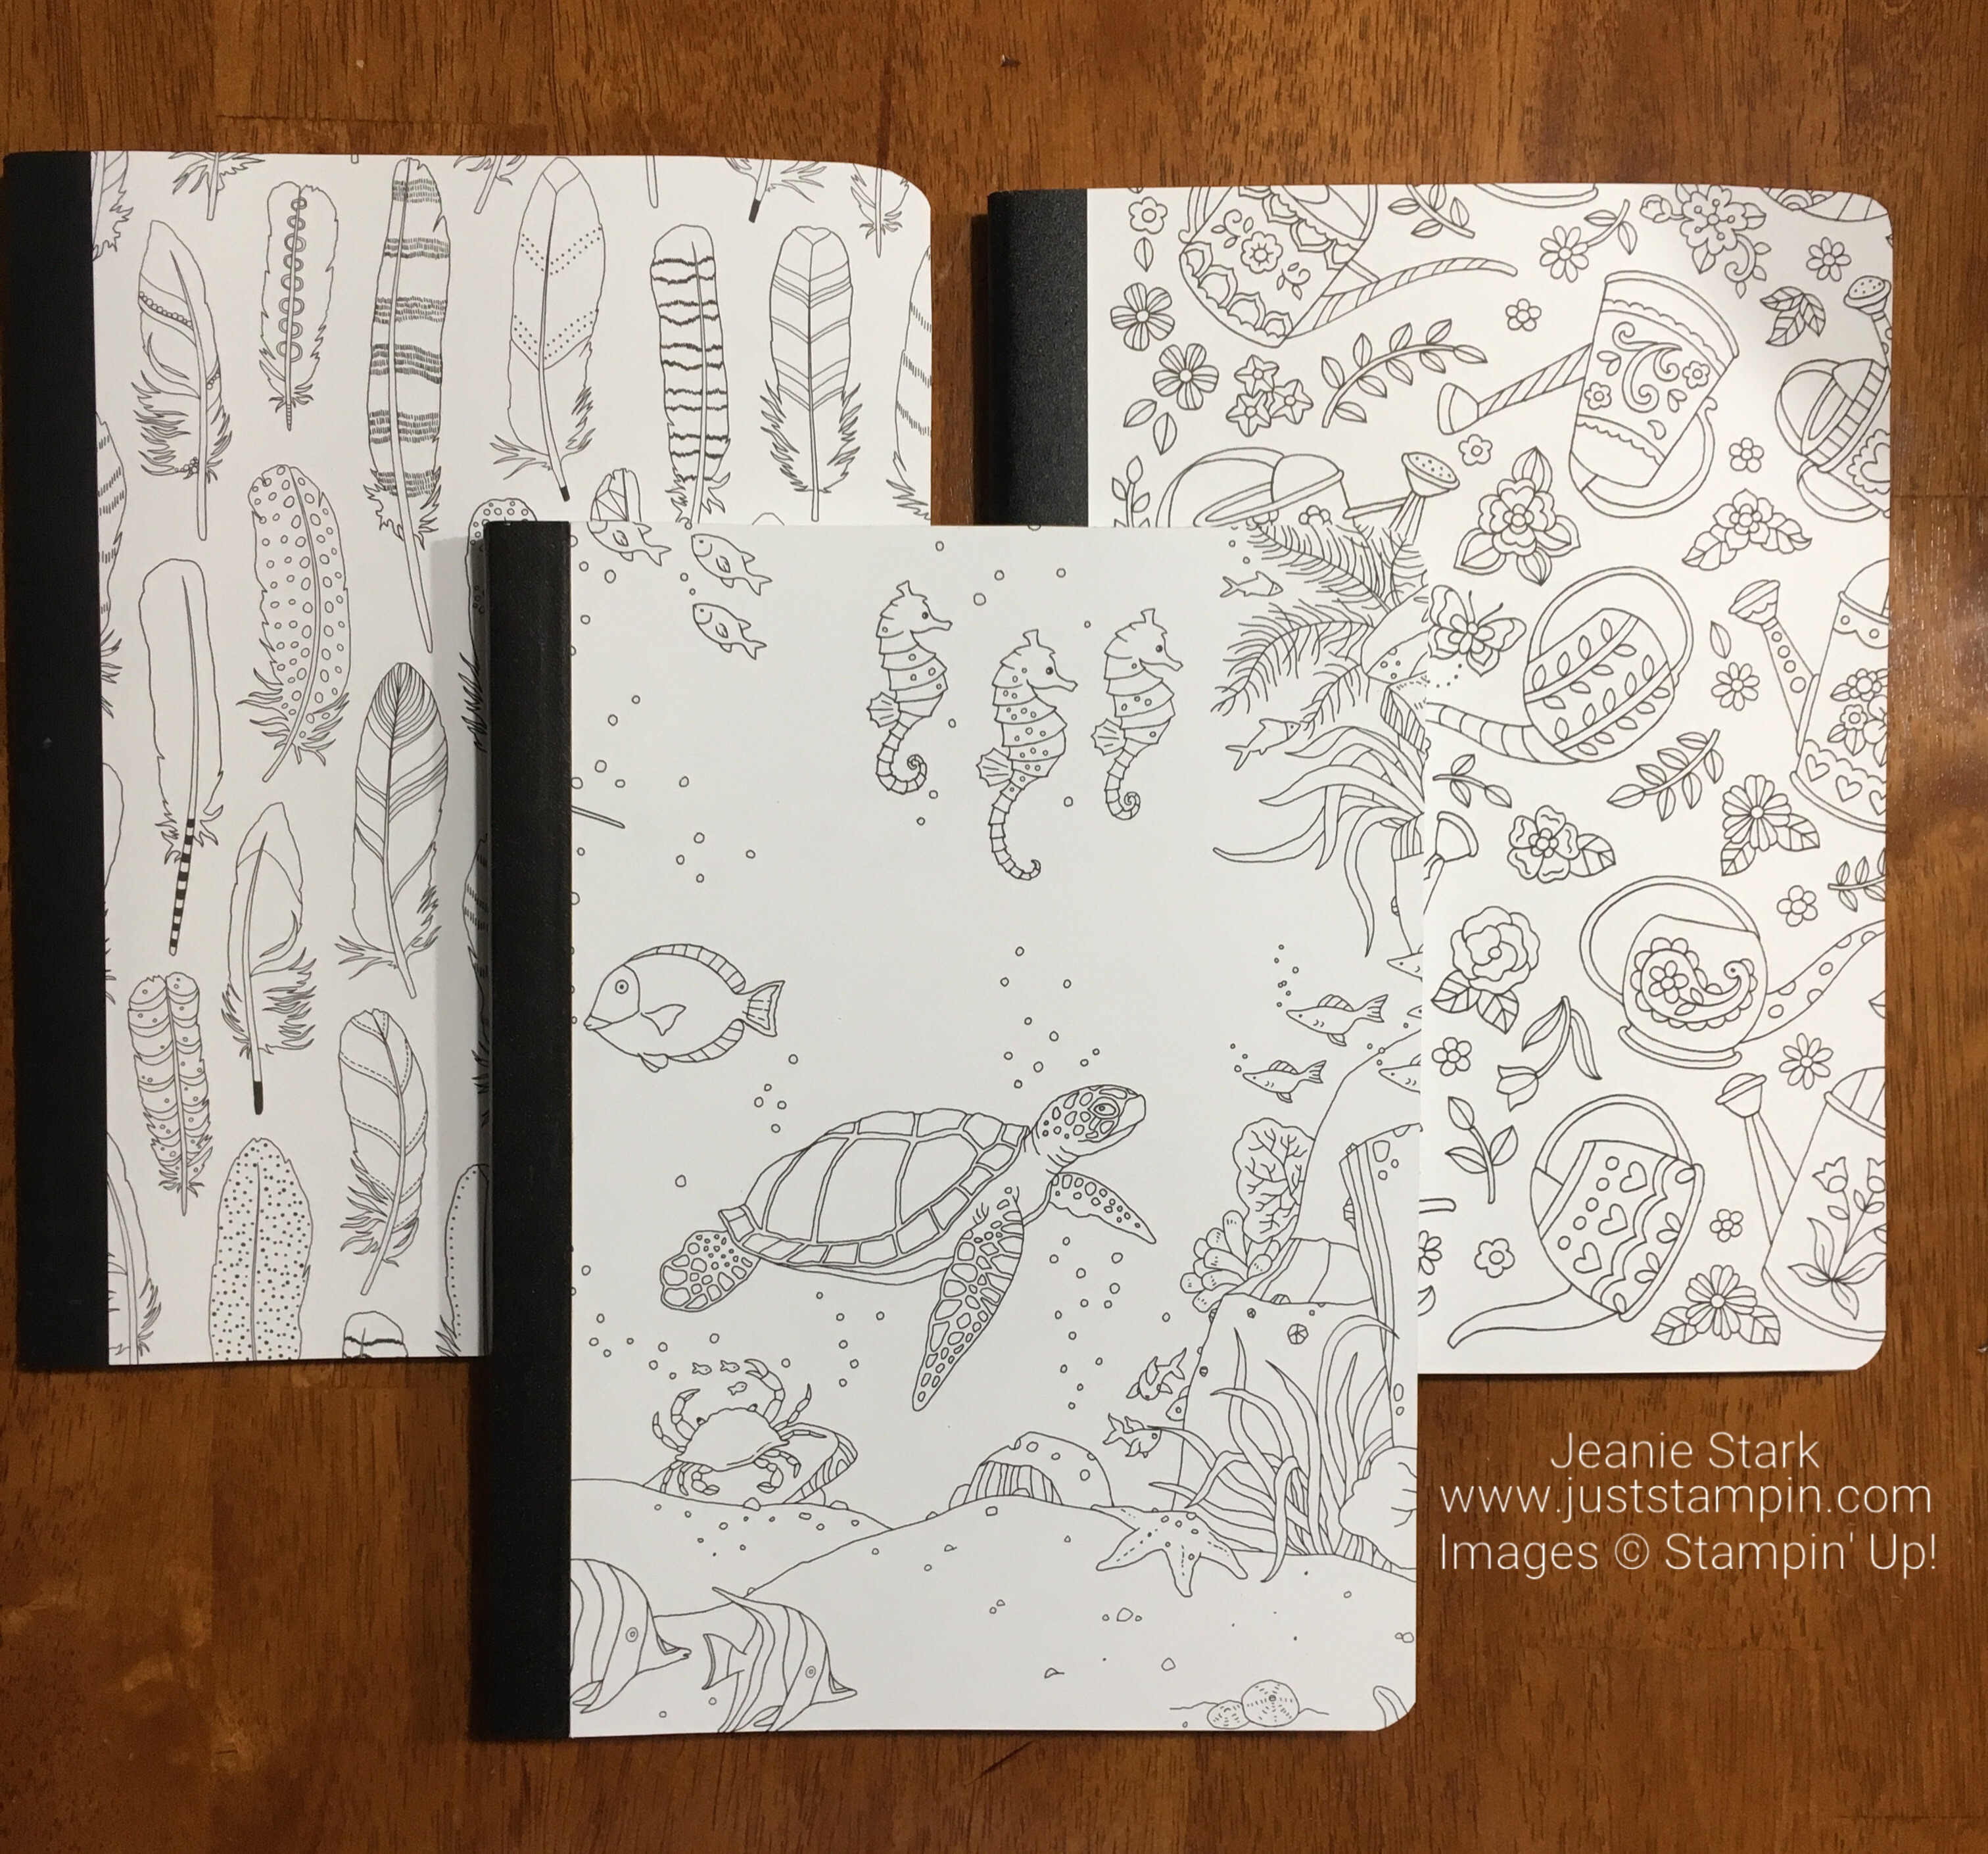 Stampin Up Just Add Color Specialty Designer Series Paper composition book cover idea - Jeanie Stark StampinUp